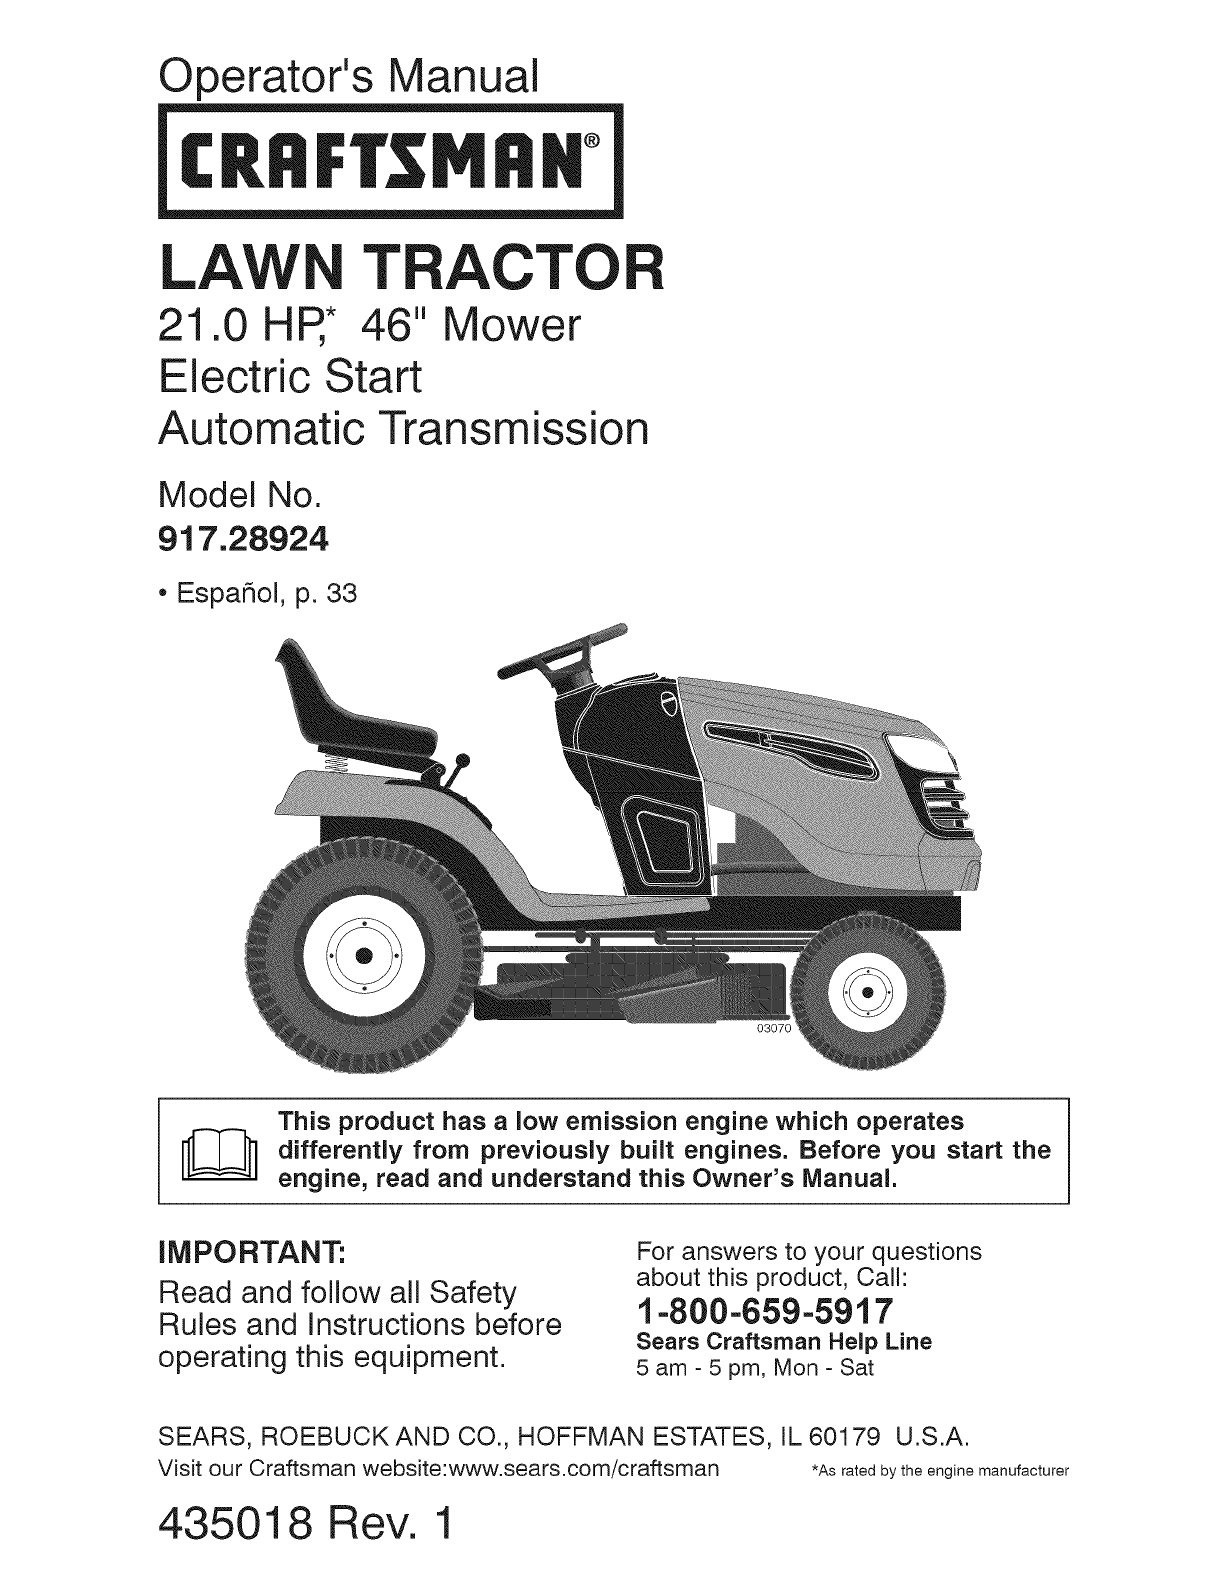 Craftsman Mower 917288515 Wiring Diagram Tractor Page 65 Of Lawn 917 289244 User Guide Toro